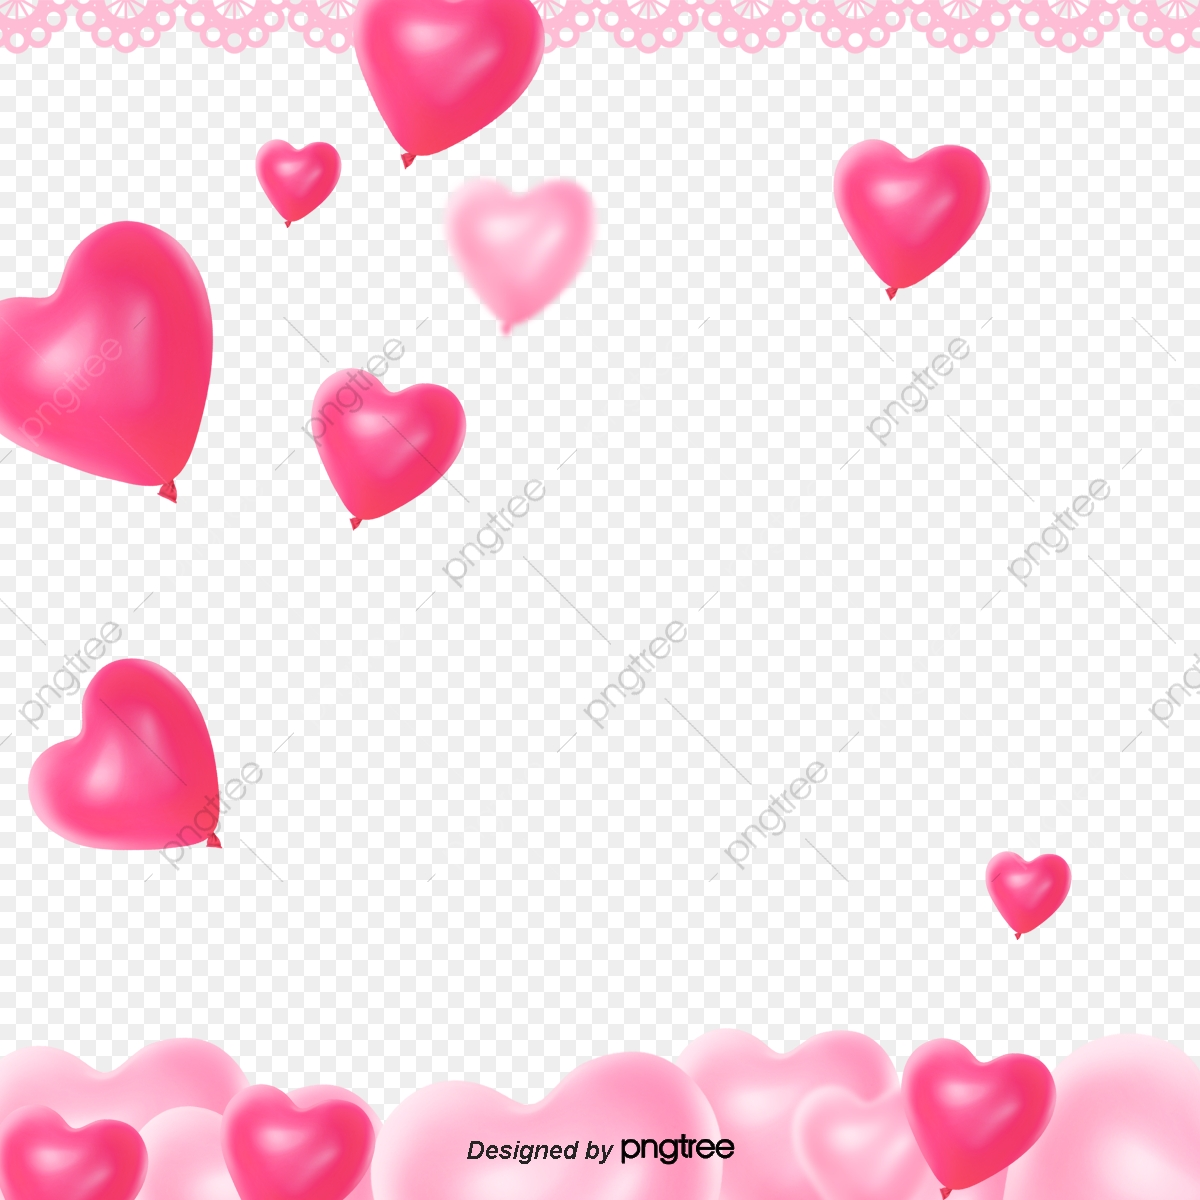 Pink Stereoscopic Heart Love Balloon Lace Valentines Day ...